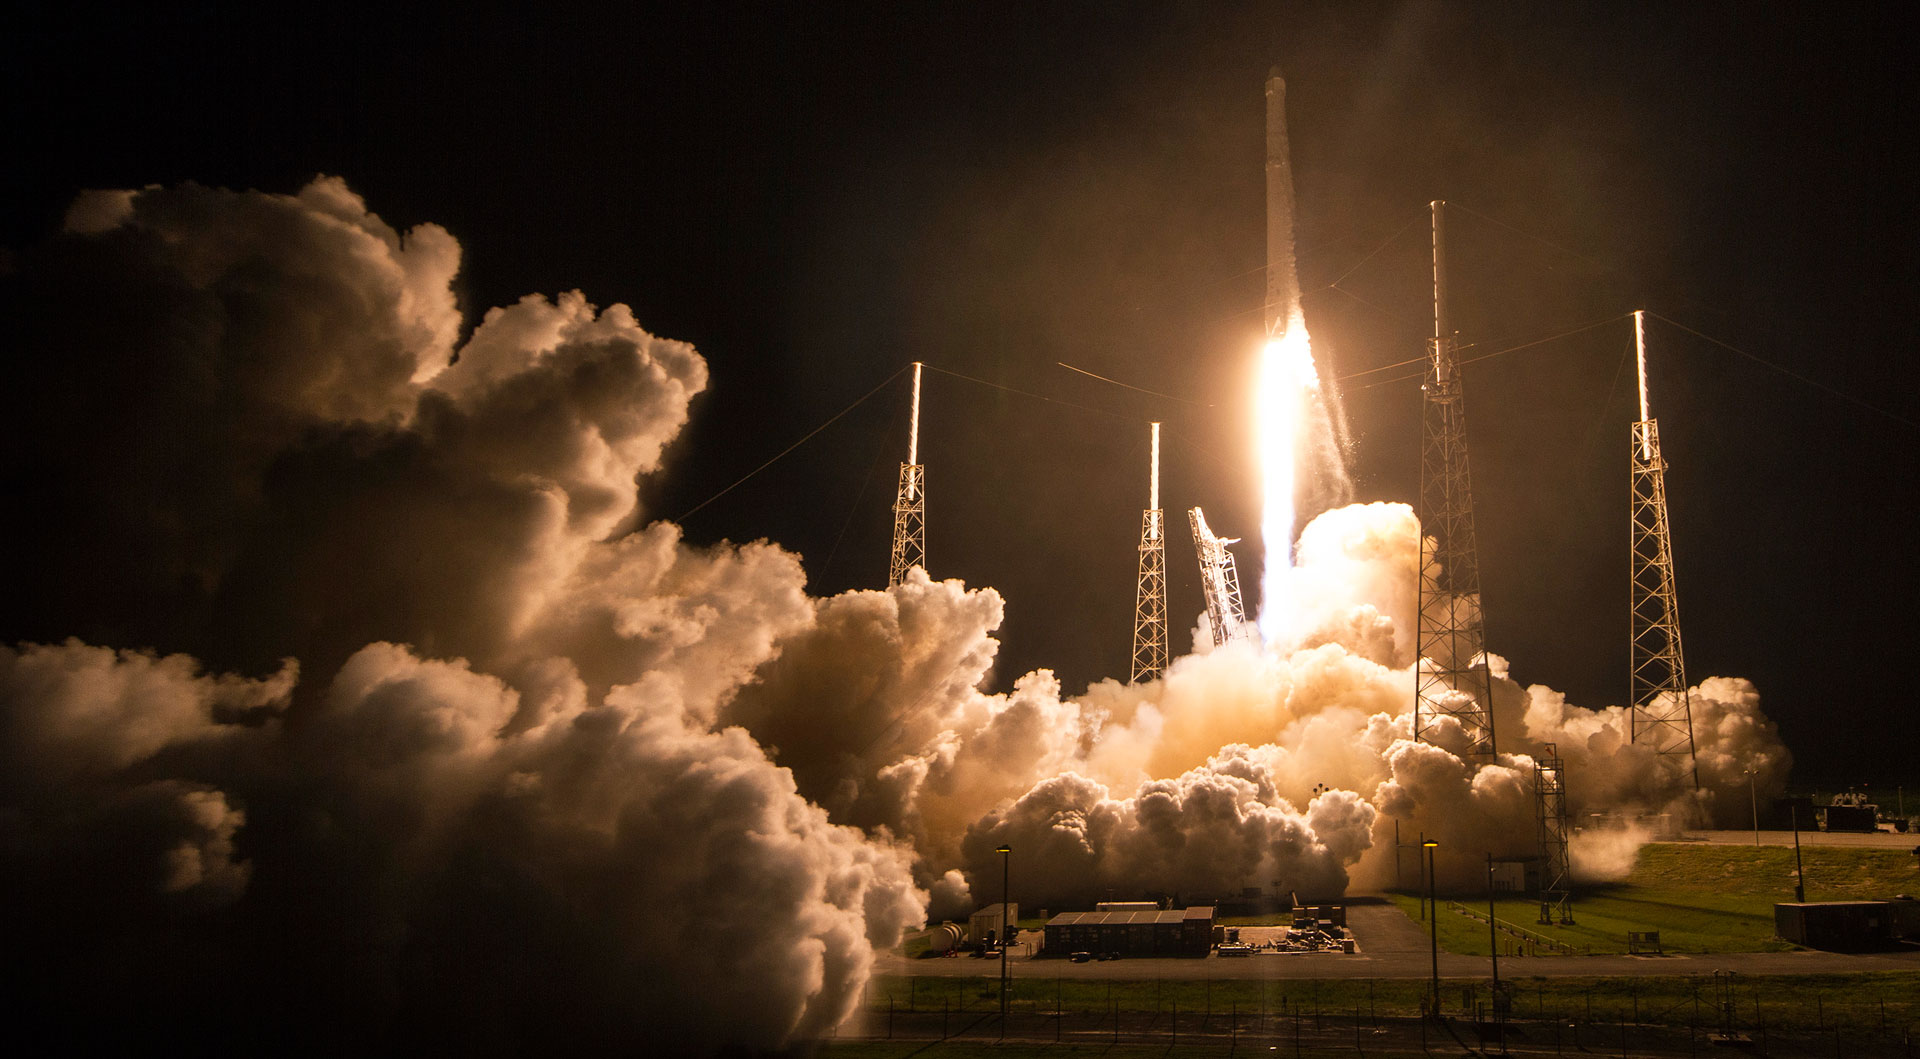 SpaceX's Dragon cargo craft launched early Monday on a Falcon 9 rocket from Space Launch Complex 40 at Cape Canaveral Air Force Station in Florida.